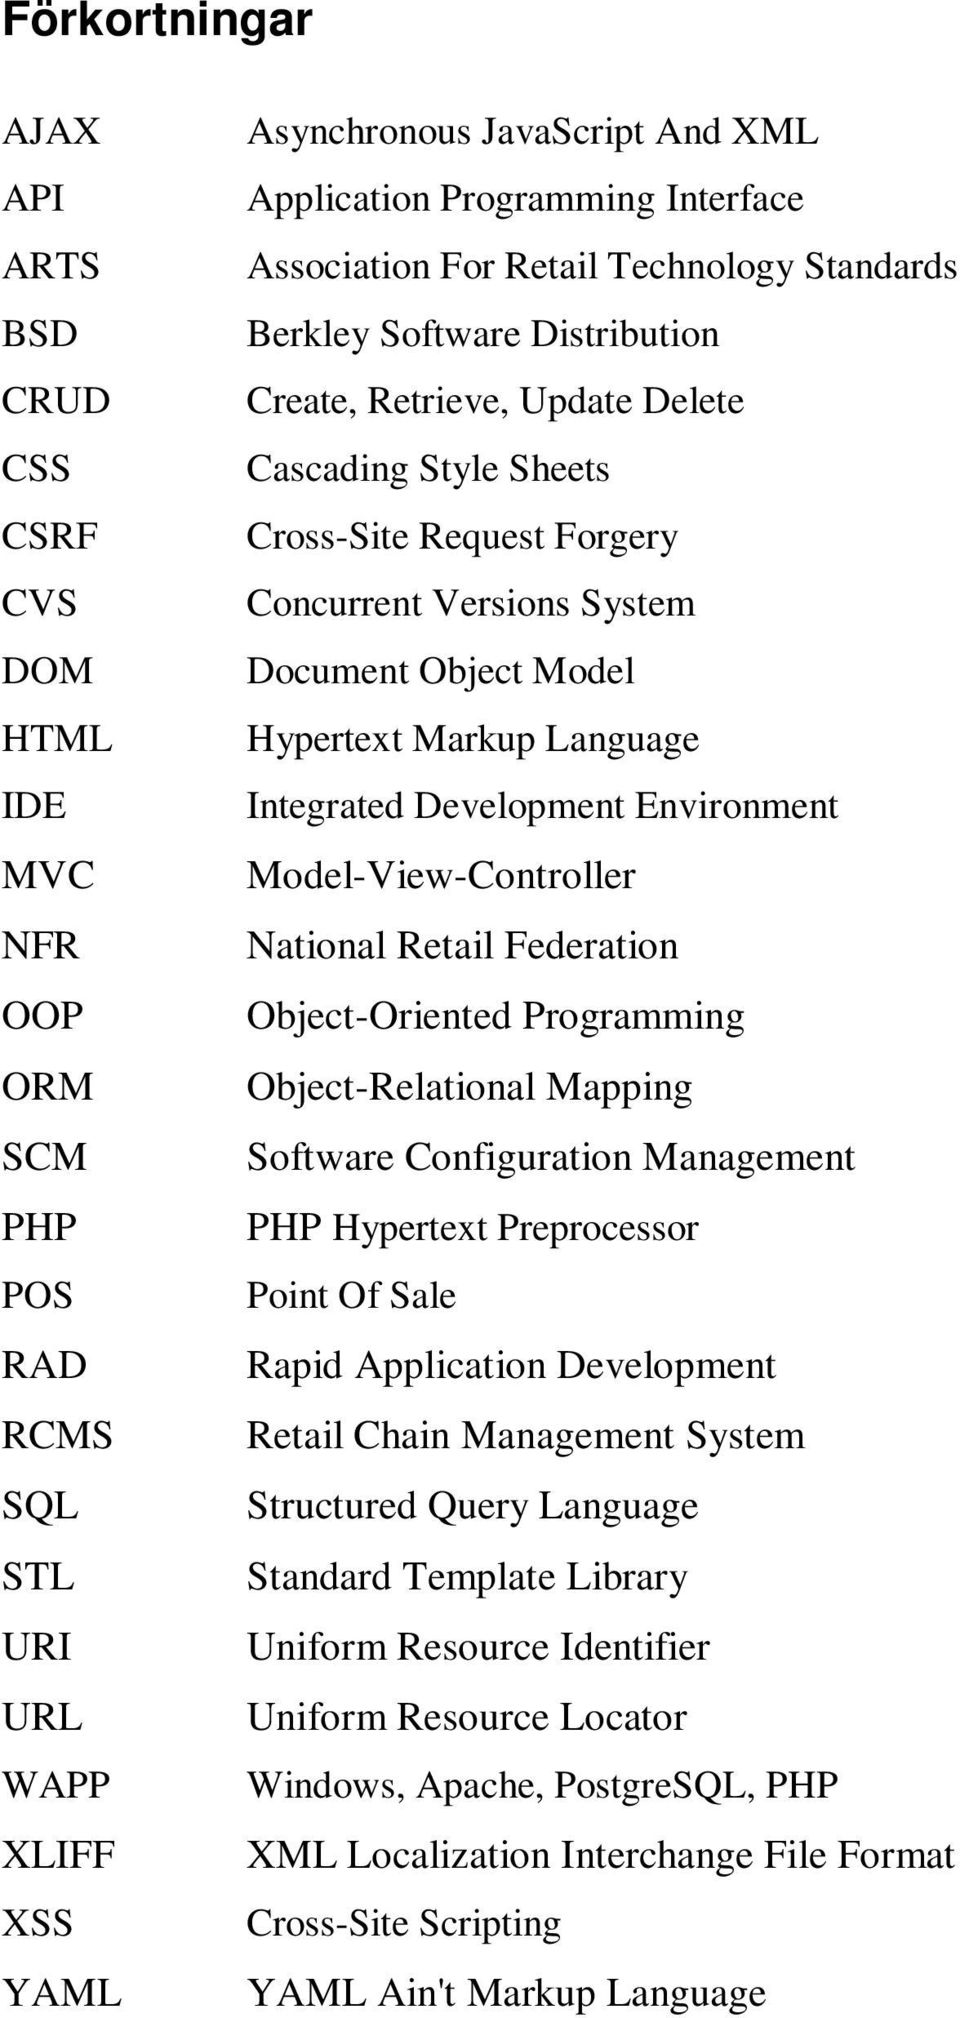 Document Object Model Hypertext Markup Language Integrated Development Environment Model-View-Controller National Retail Federation Object-Oriented Programming Object-Relational Mapping Software